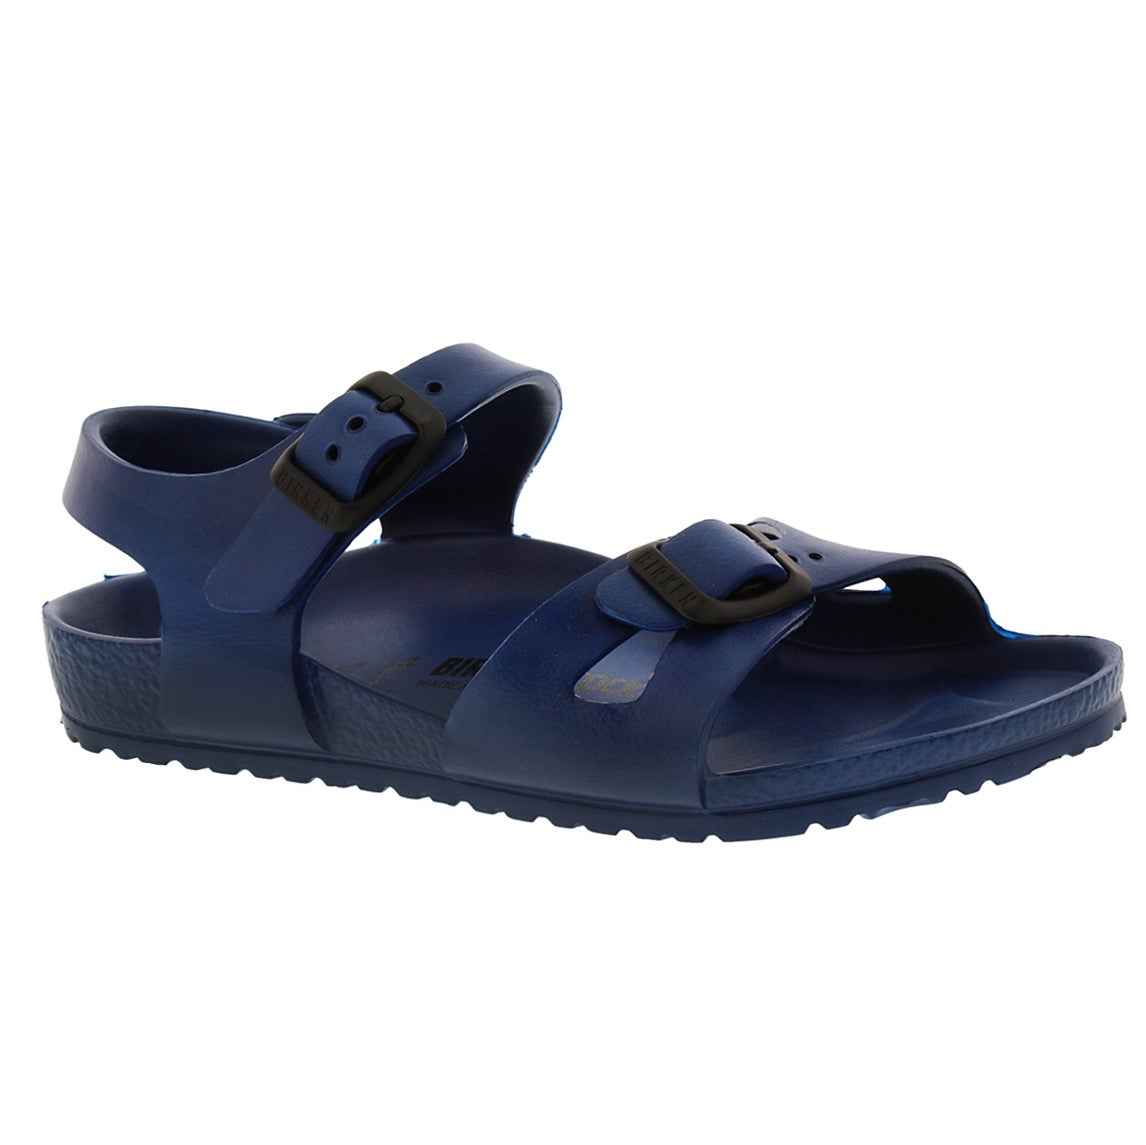 Kids' RIO navy 2 strap sandals - Narrow